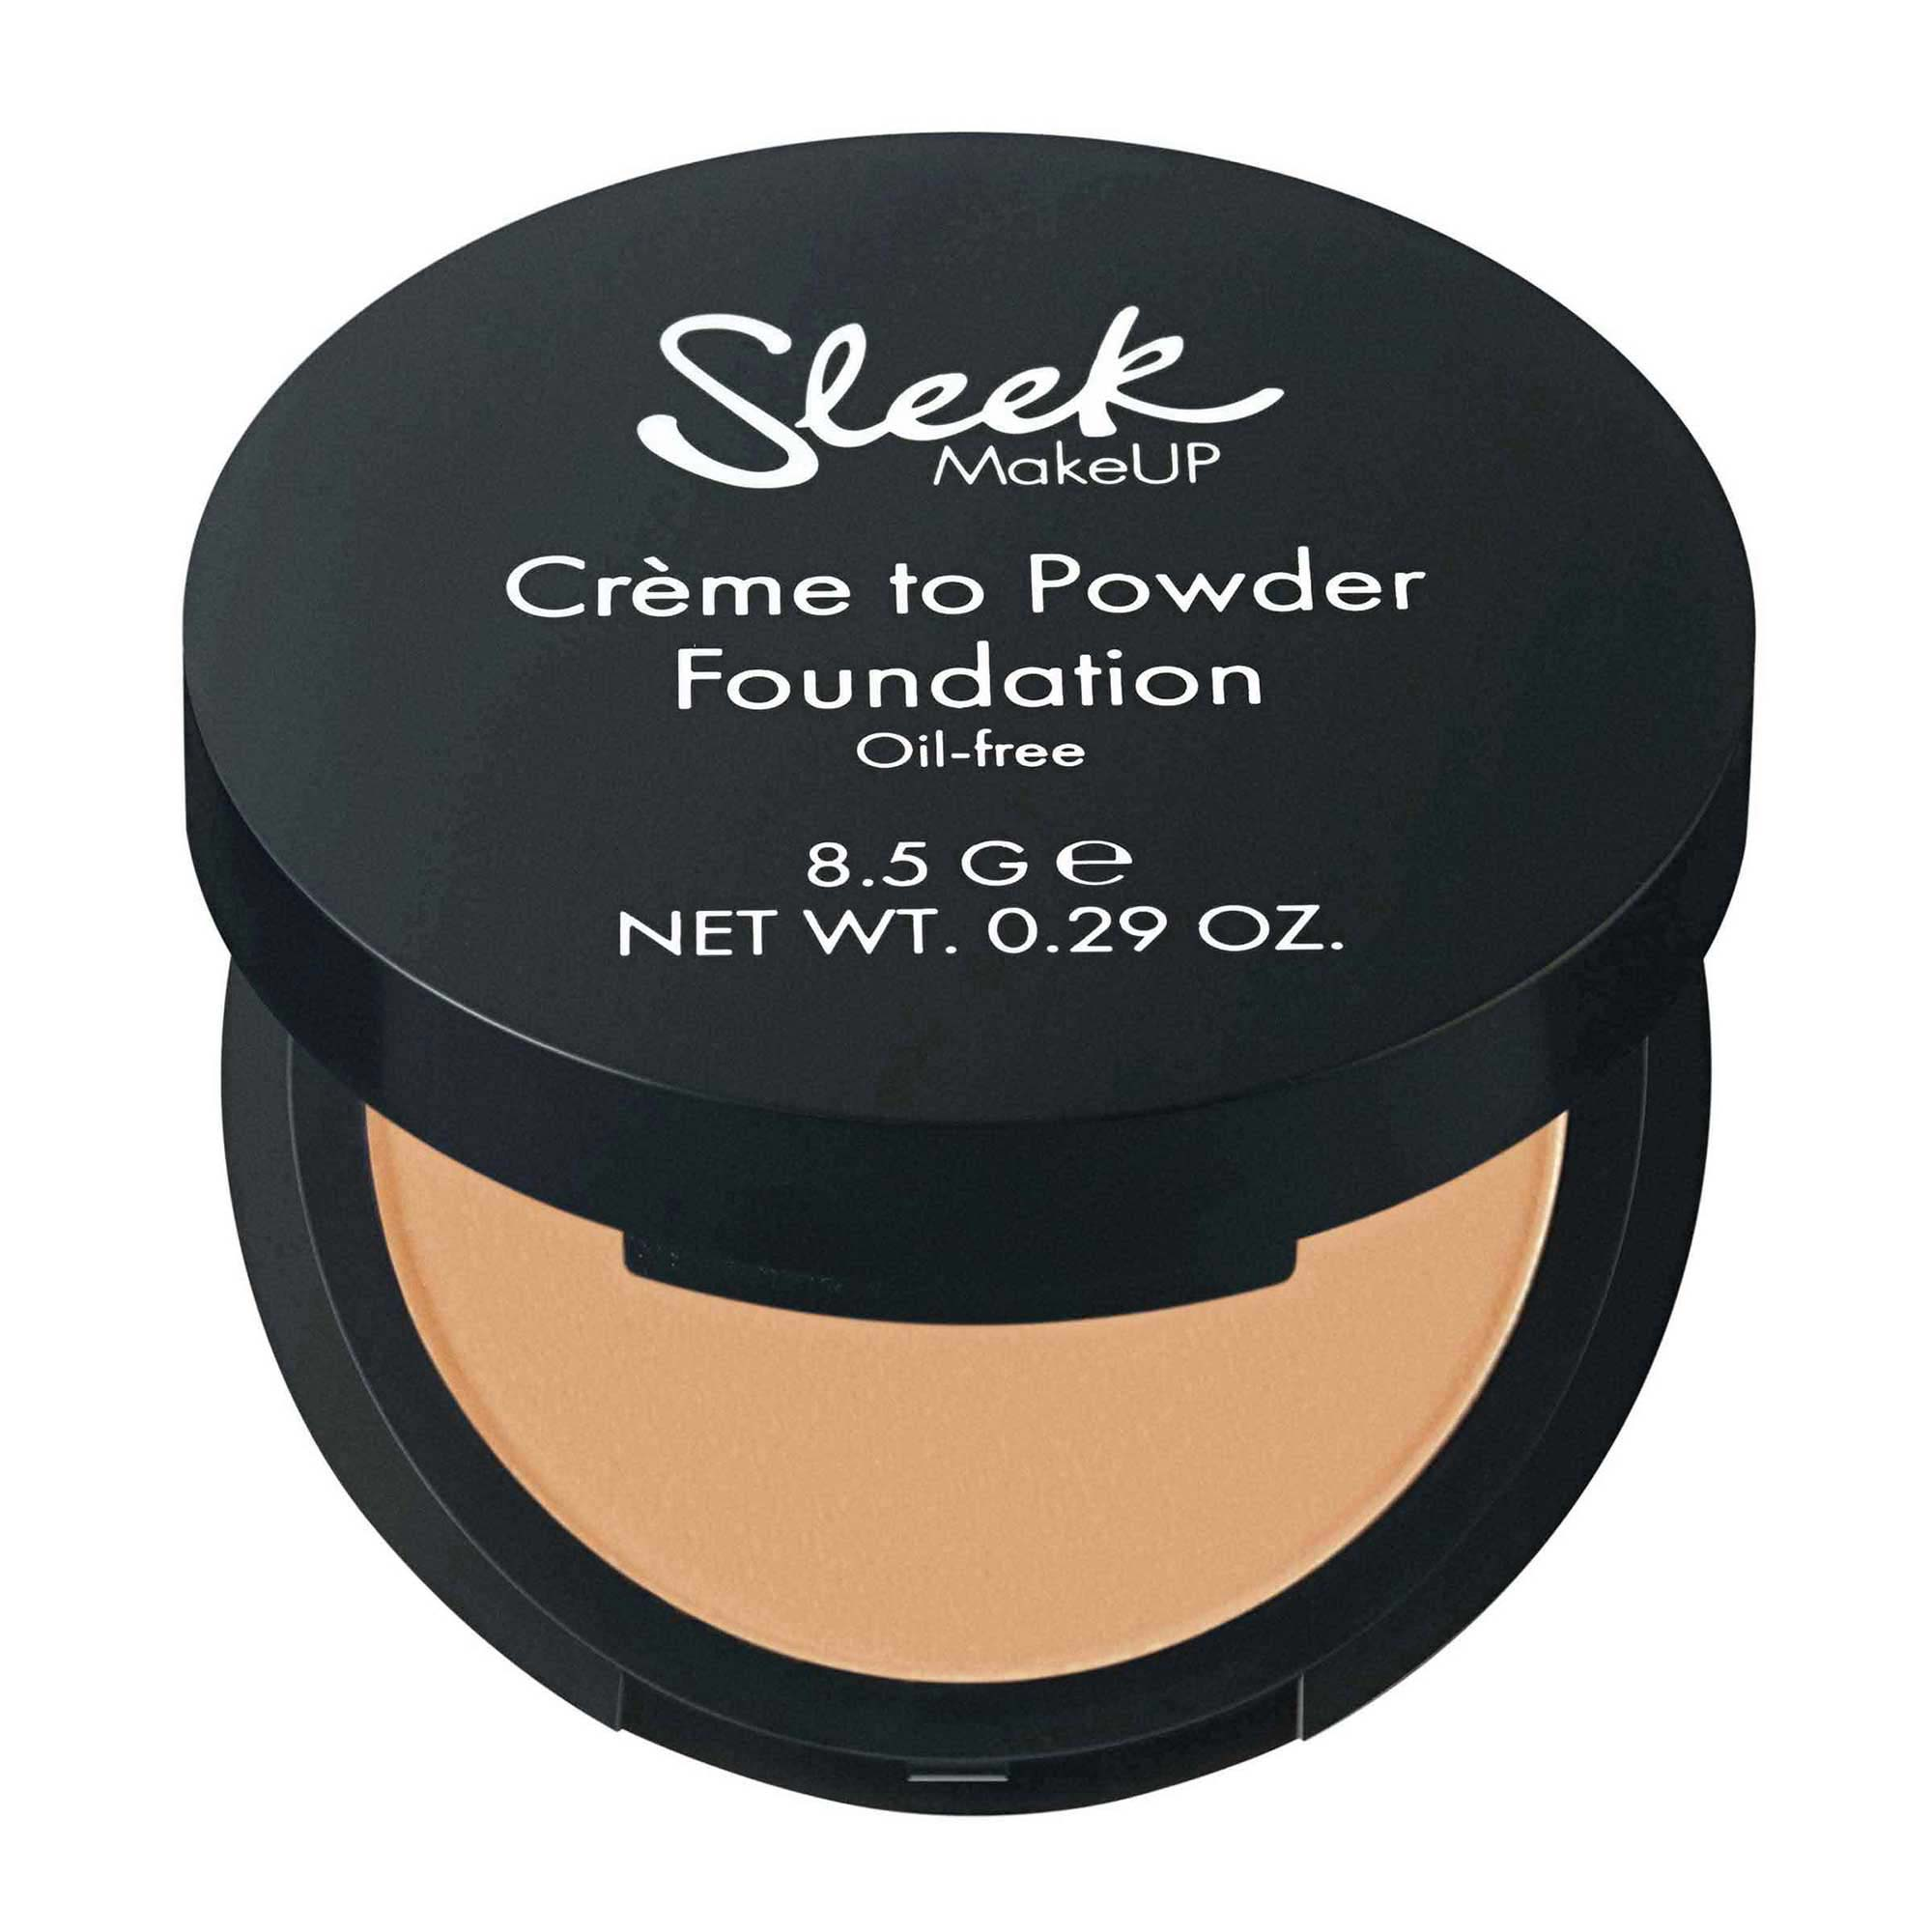 Crème to Powder Foundation C2P5